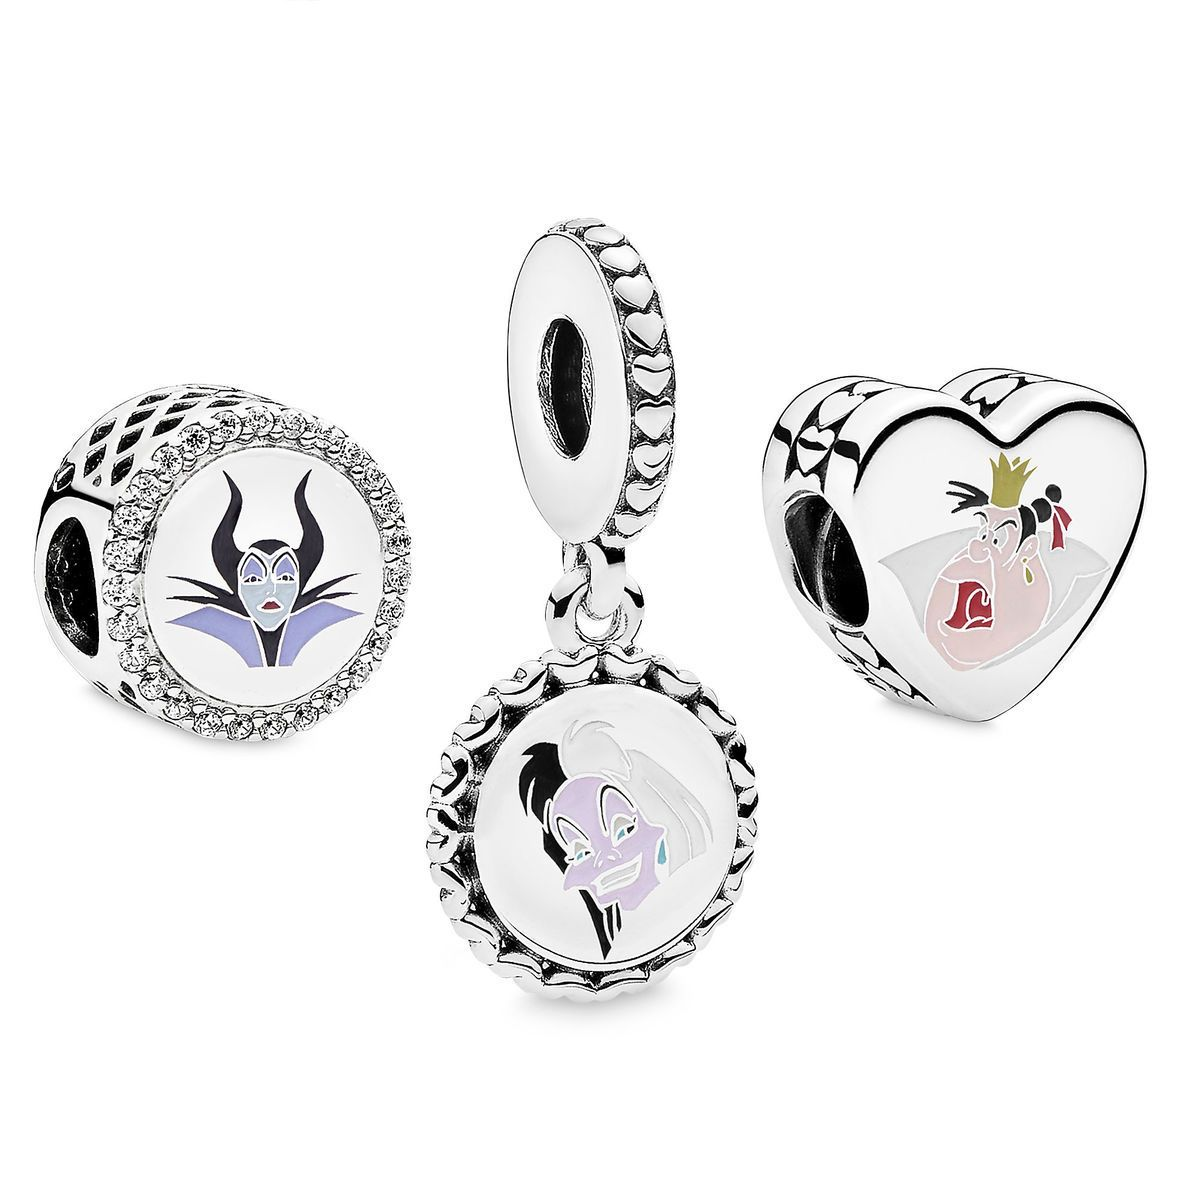 356aea31f Disney Villains Charm Set by Pandora Jewelry in 2019 | Things I want ...